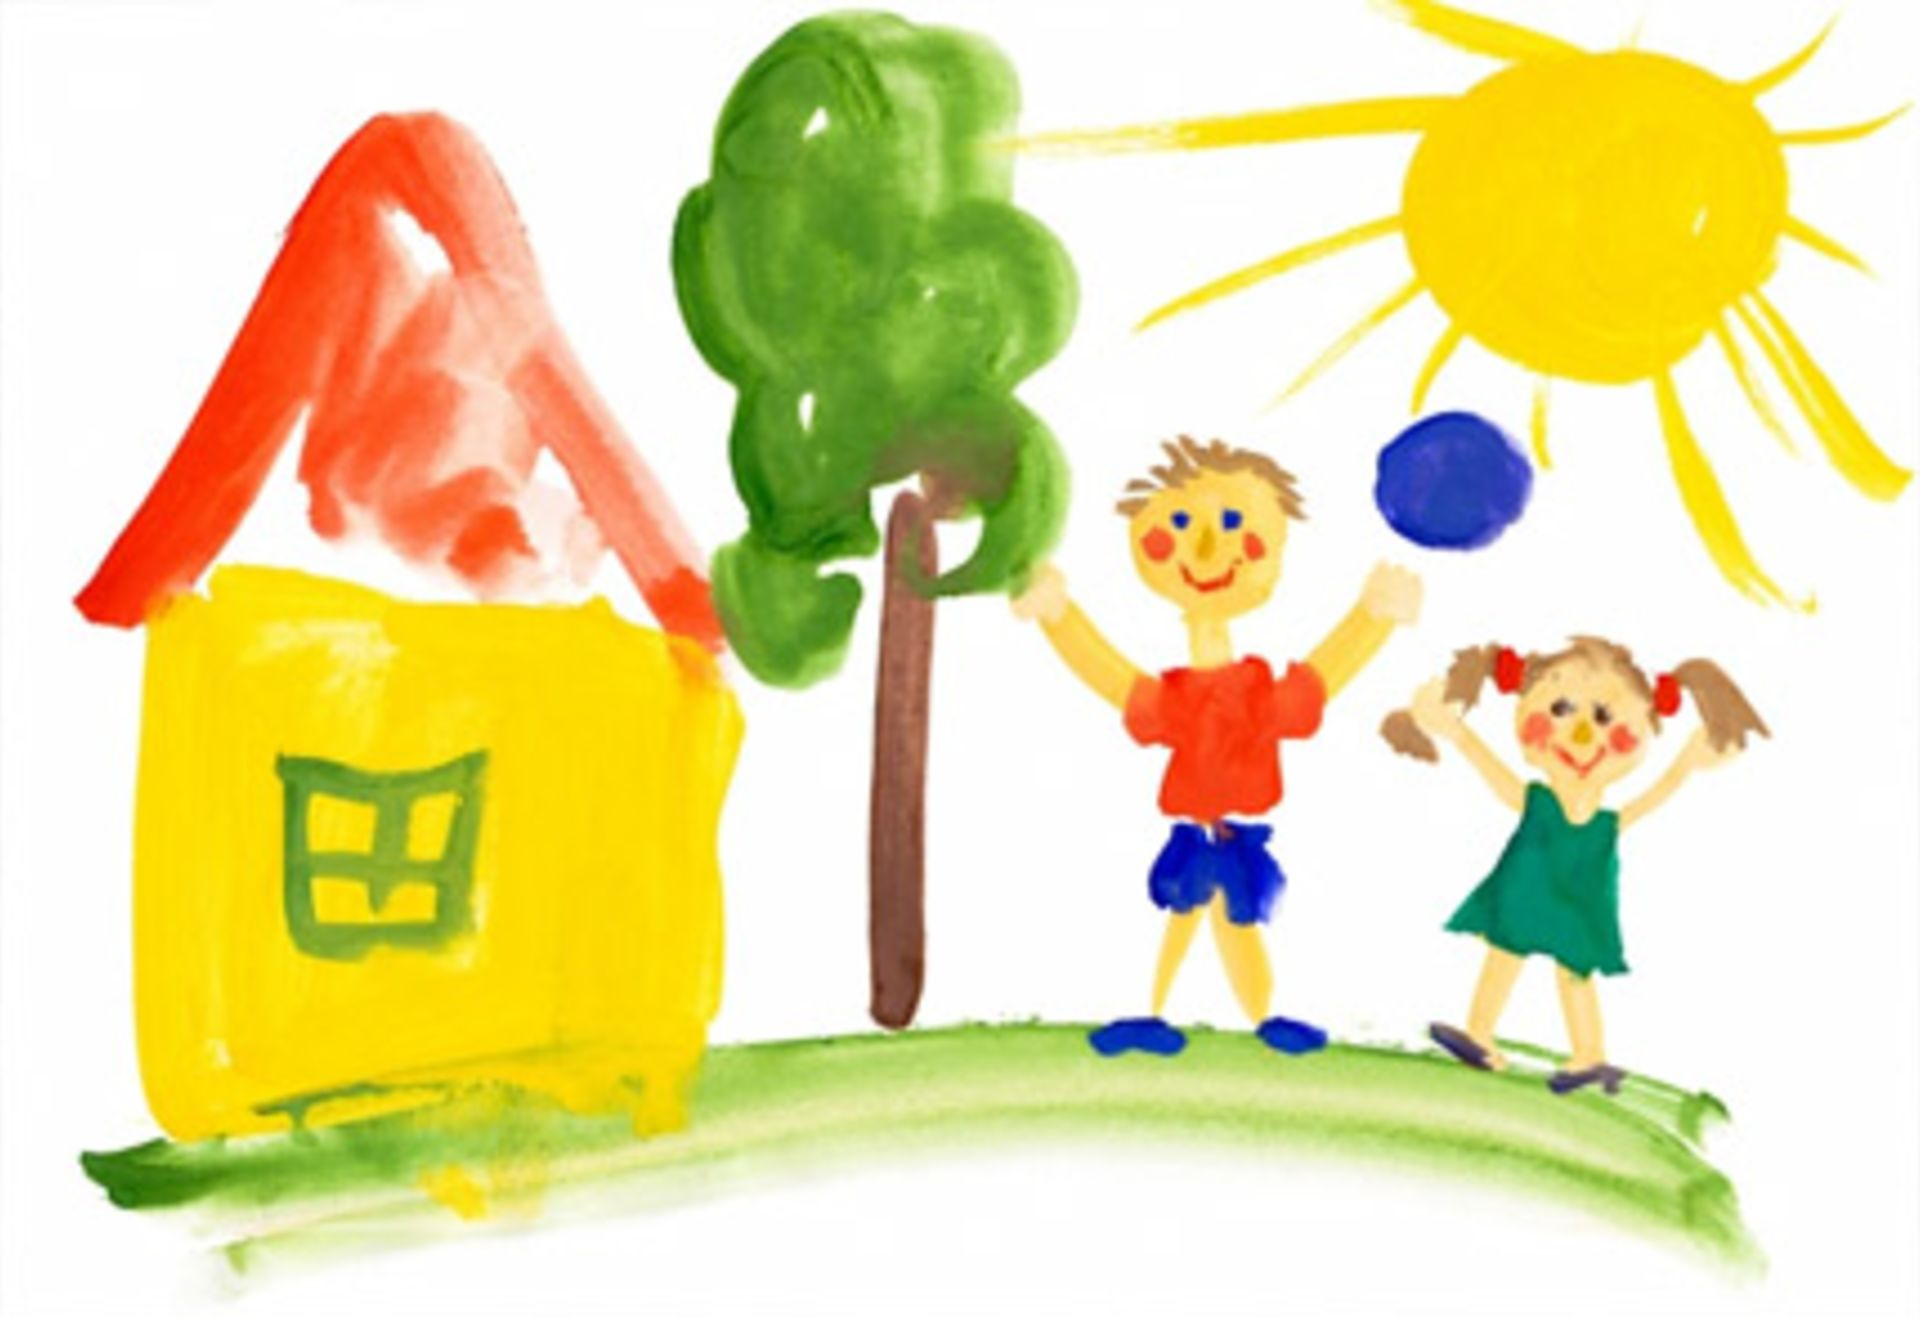 Child Safety Tips for the Home